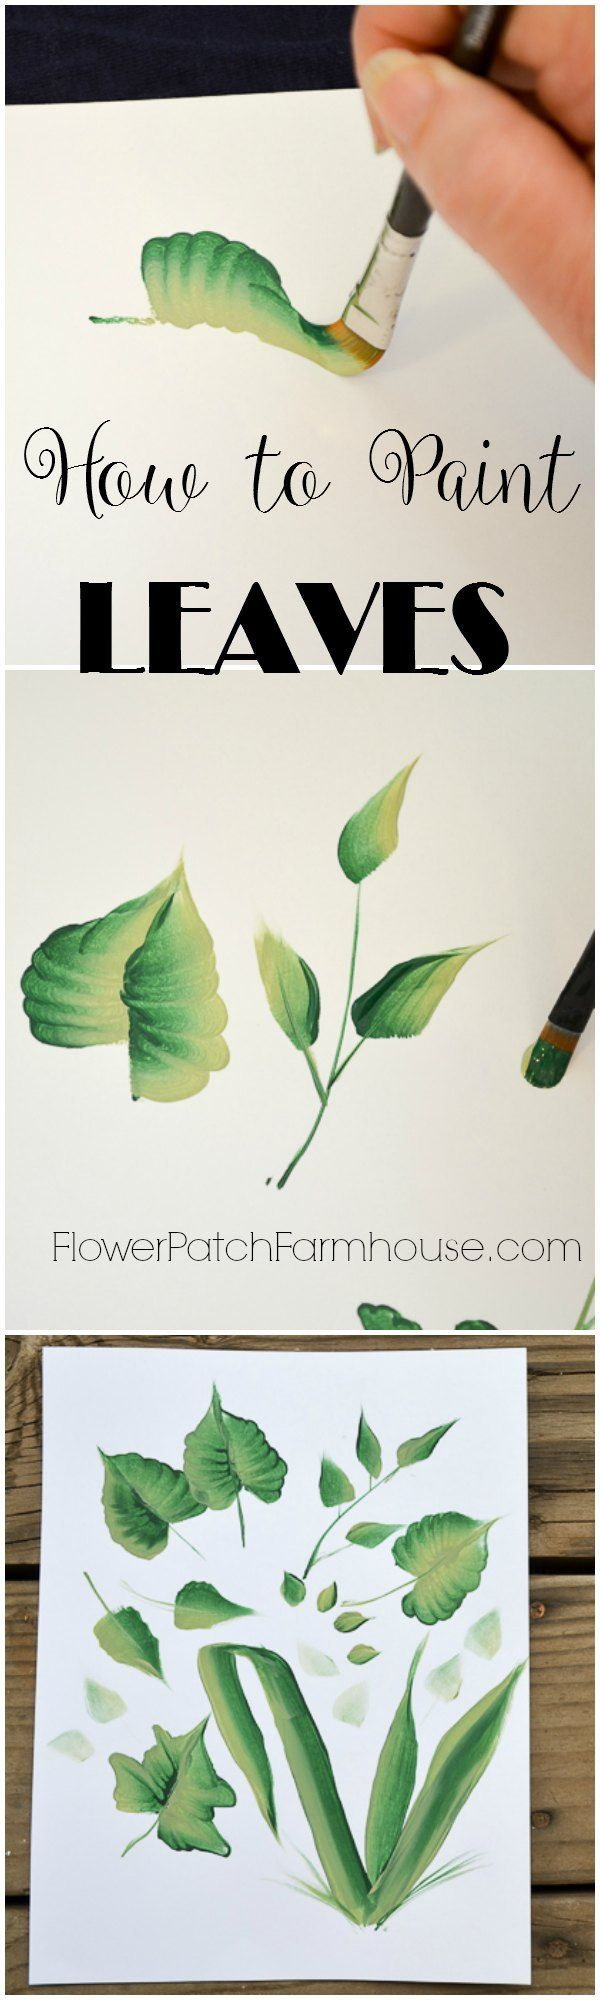 Decorative painting: Learn how to paint leaves in minutes. Complete tutorial with video so you can paint beautiful leaves!